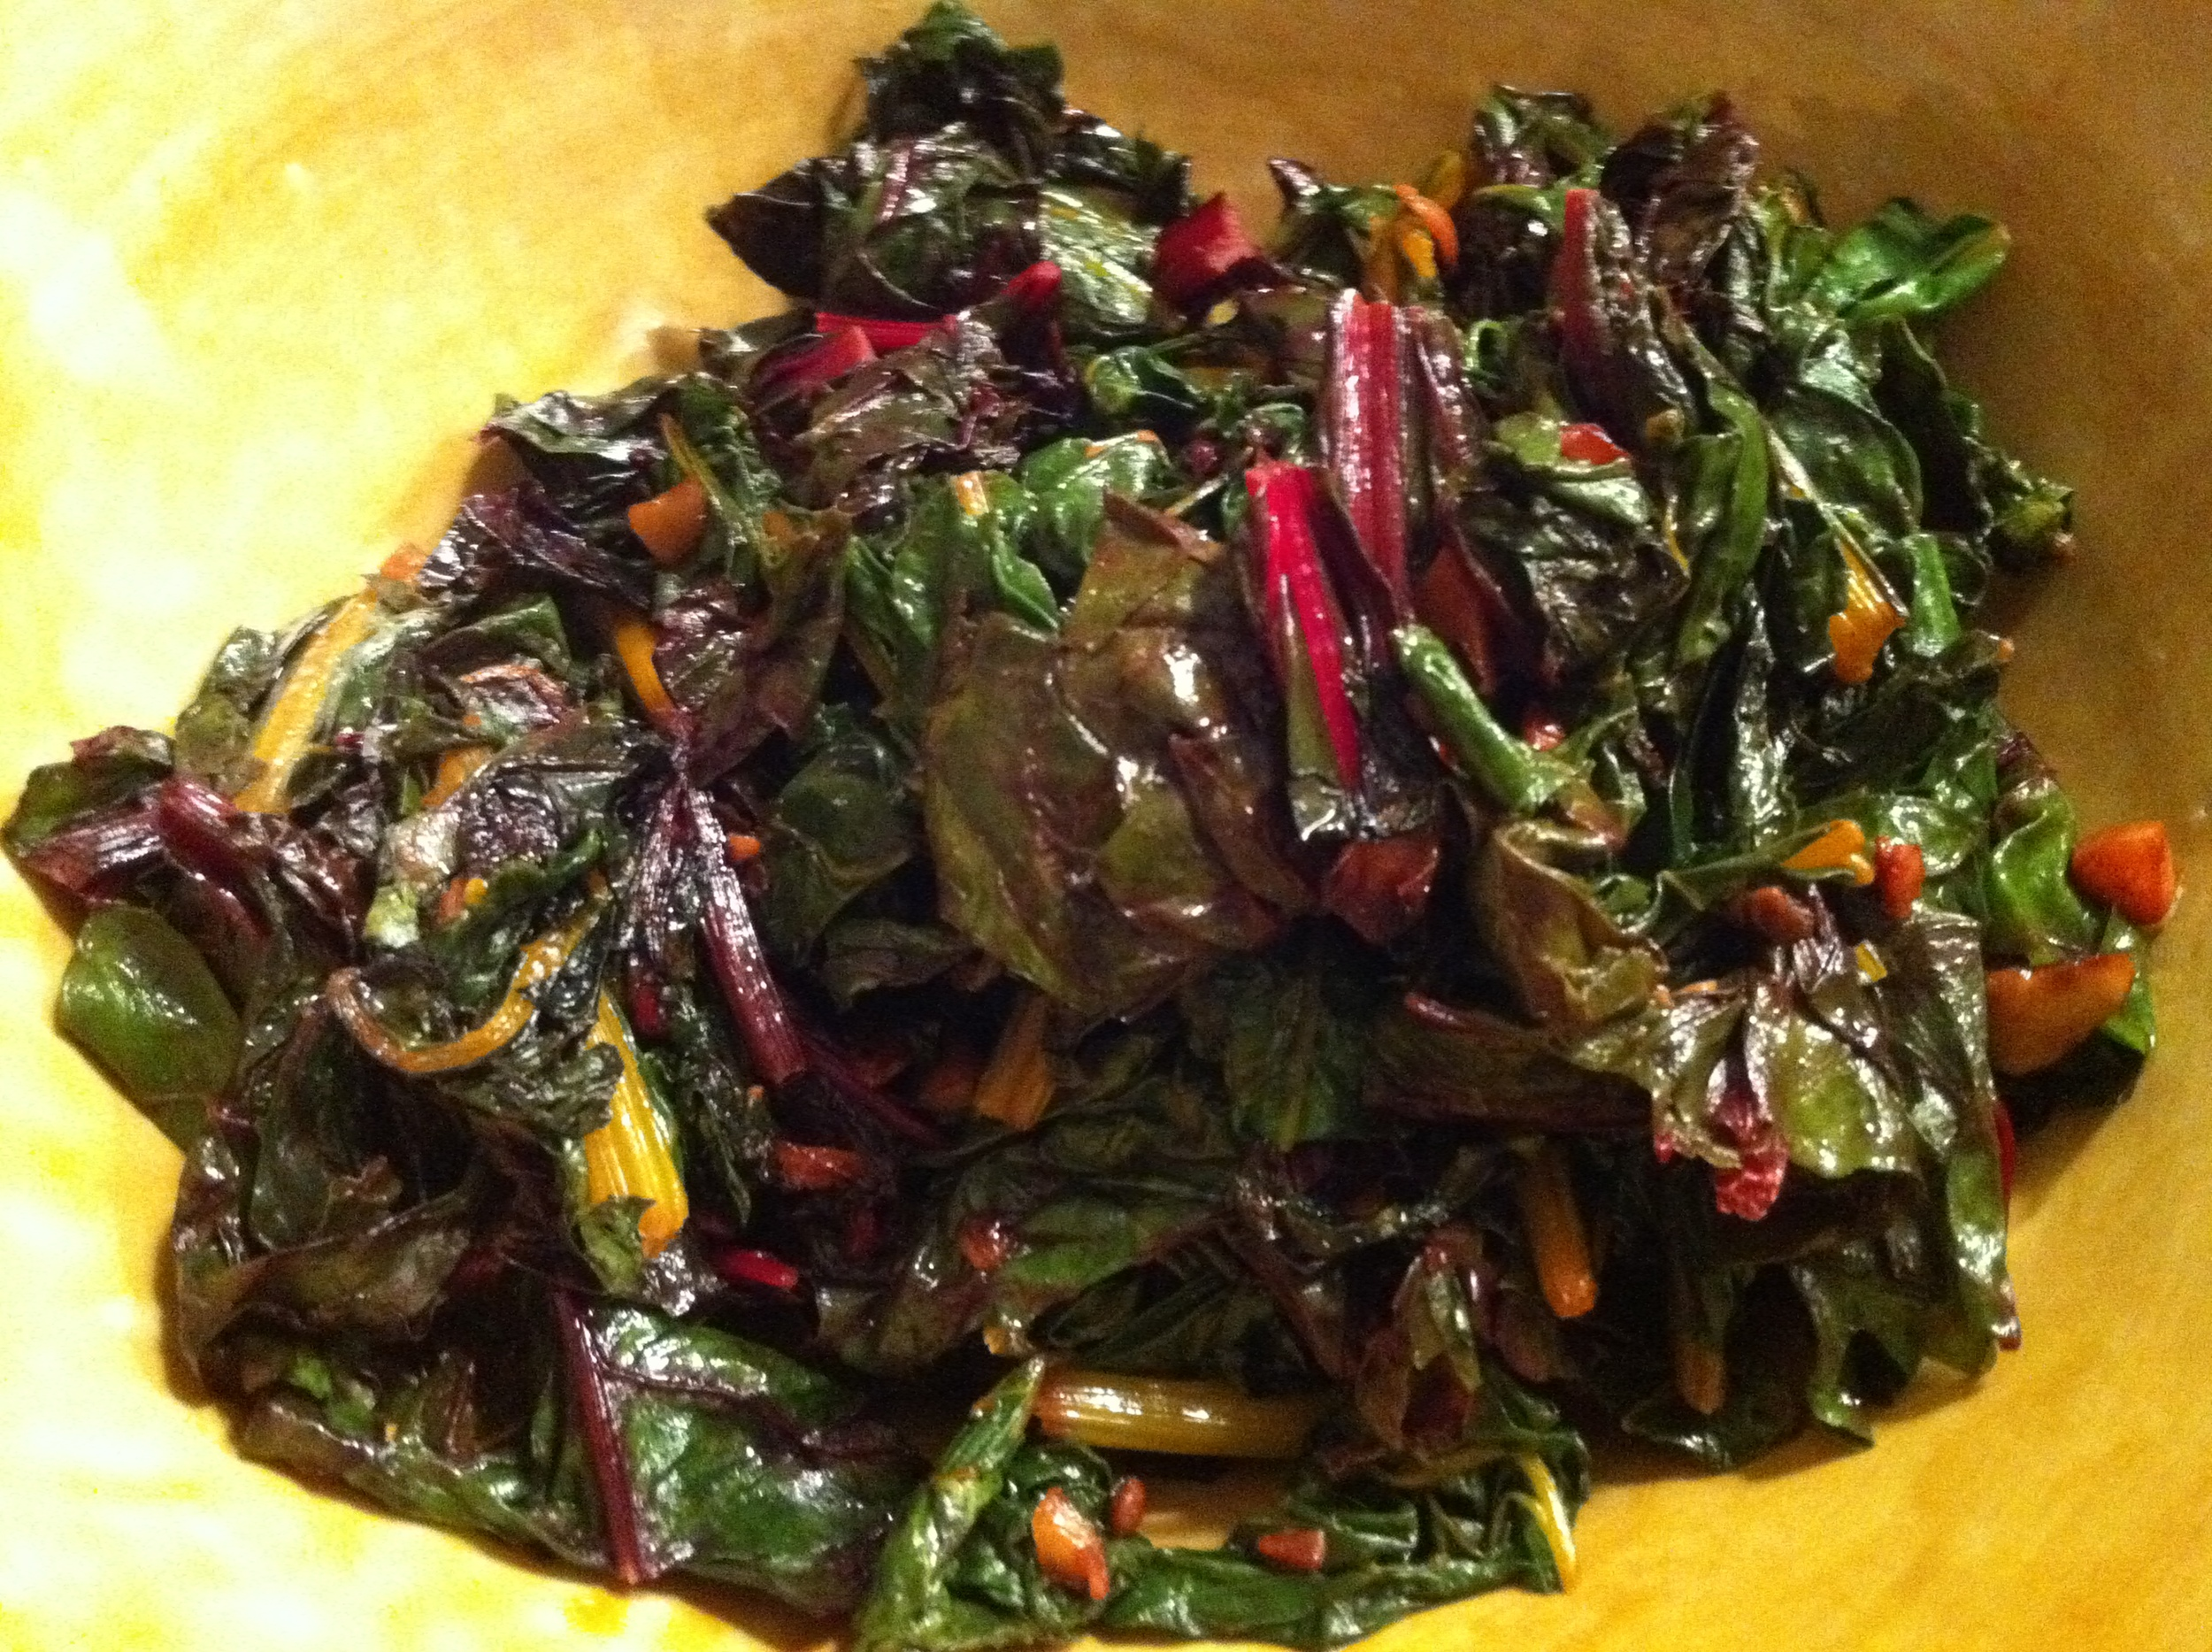 This swiss chard was delicious and superhealthy!